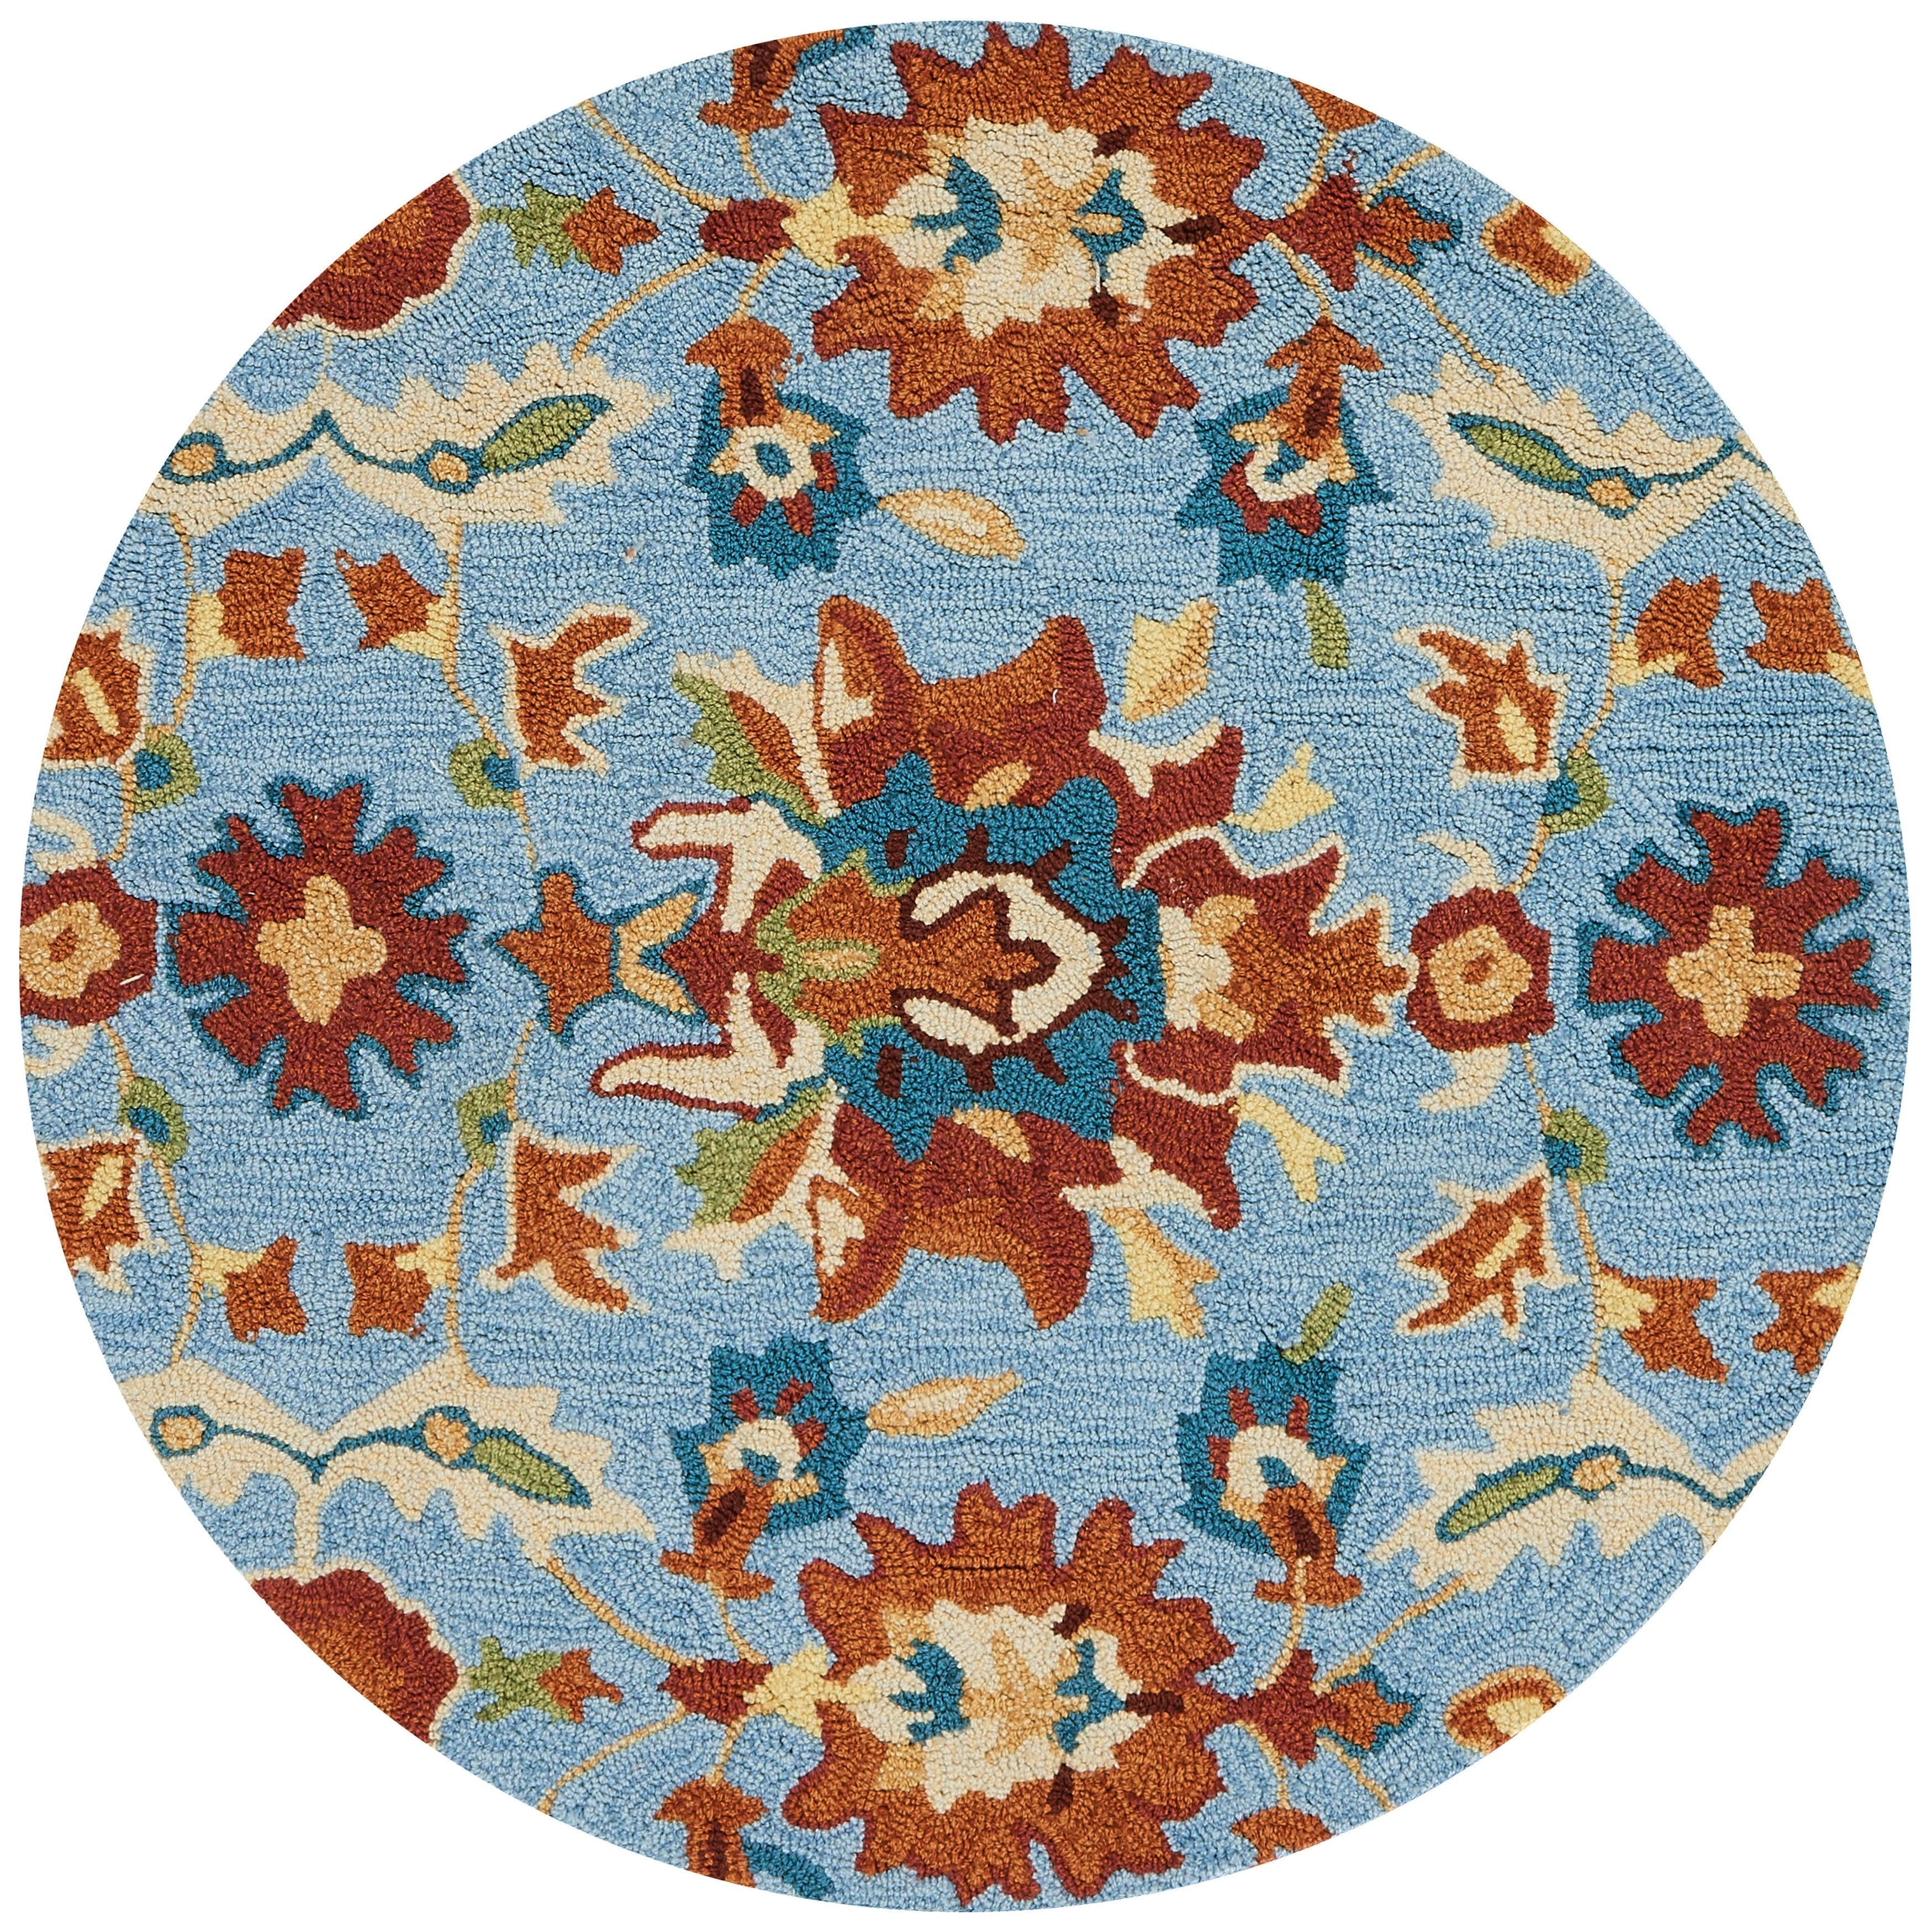 Hand-hooked Transitional Light Blue/ Rust Floral Round Rug - 3 x 3 Round (Light Blue/Spice - 3 x 3 Round)